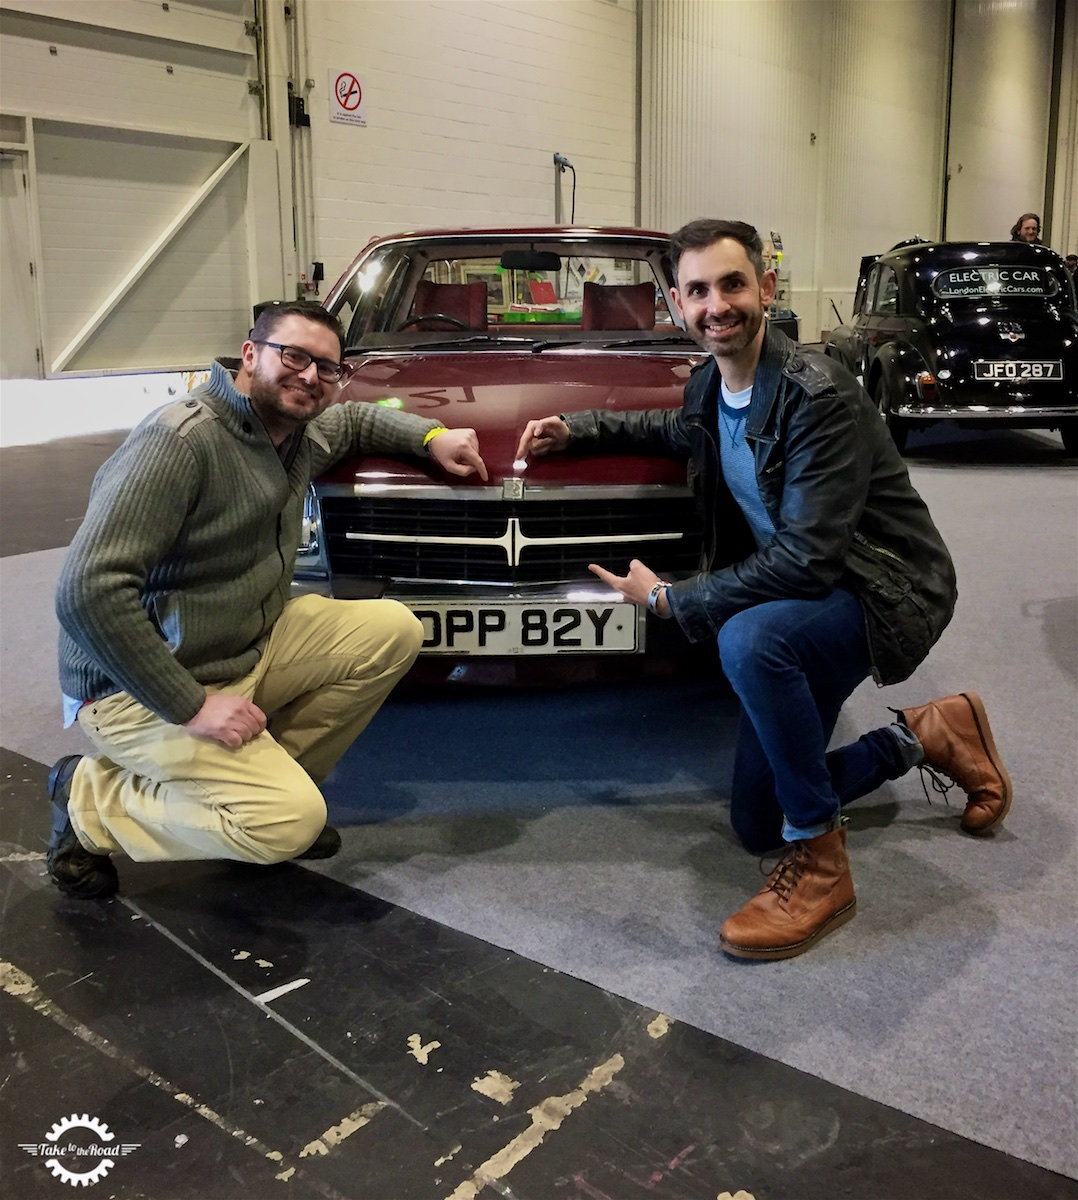 The Future of Classics with ERS and Jonny Smith - Take to the Road Vauxhall Viceroy Exclusive Interview